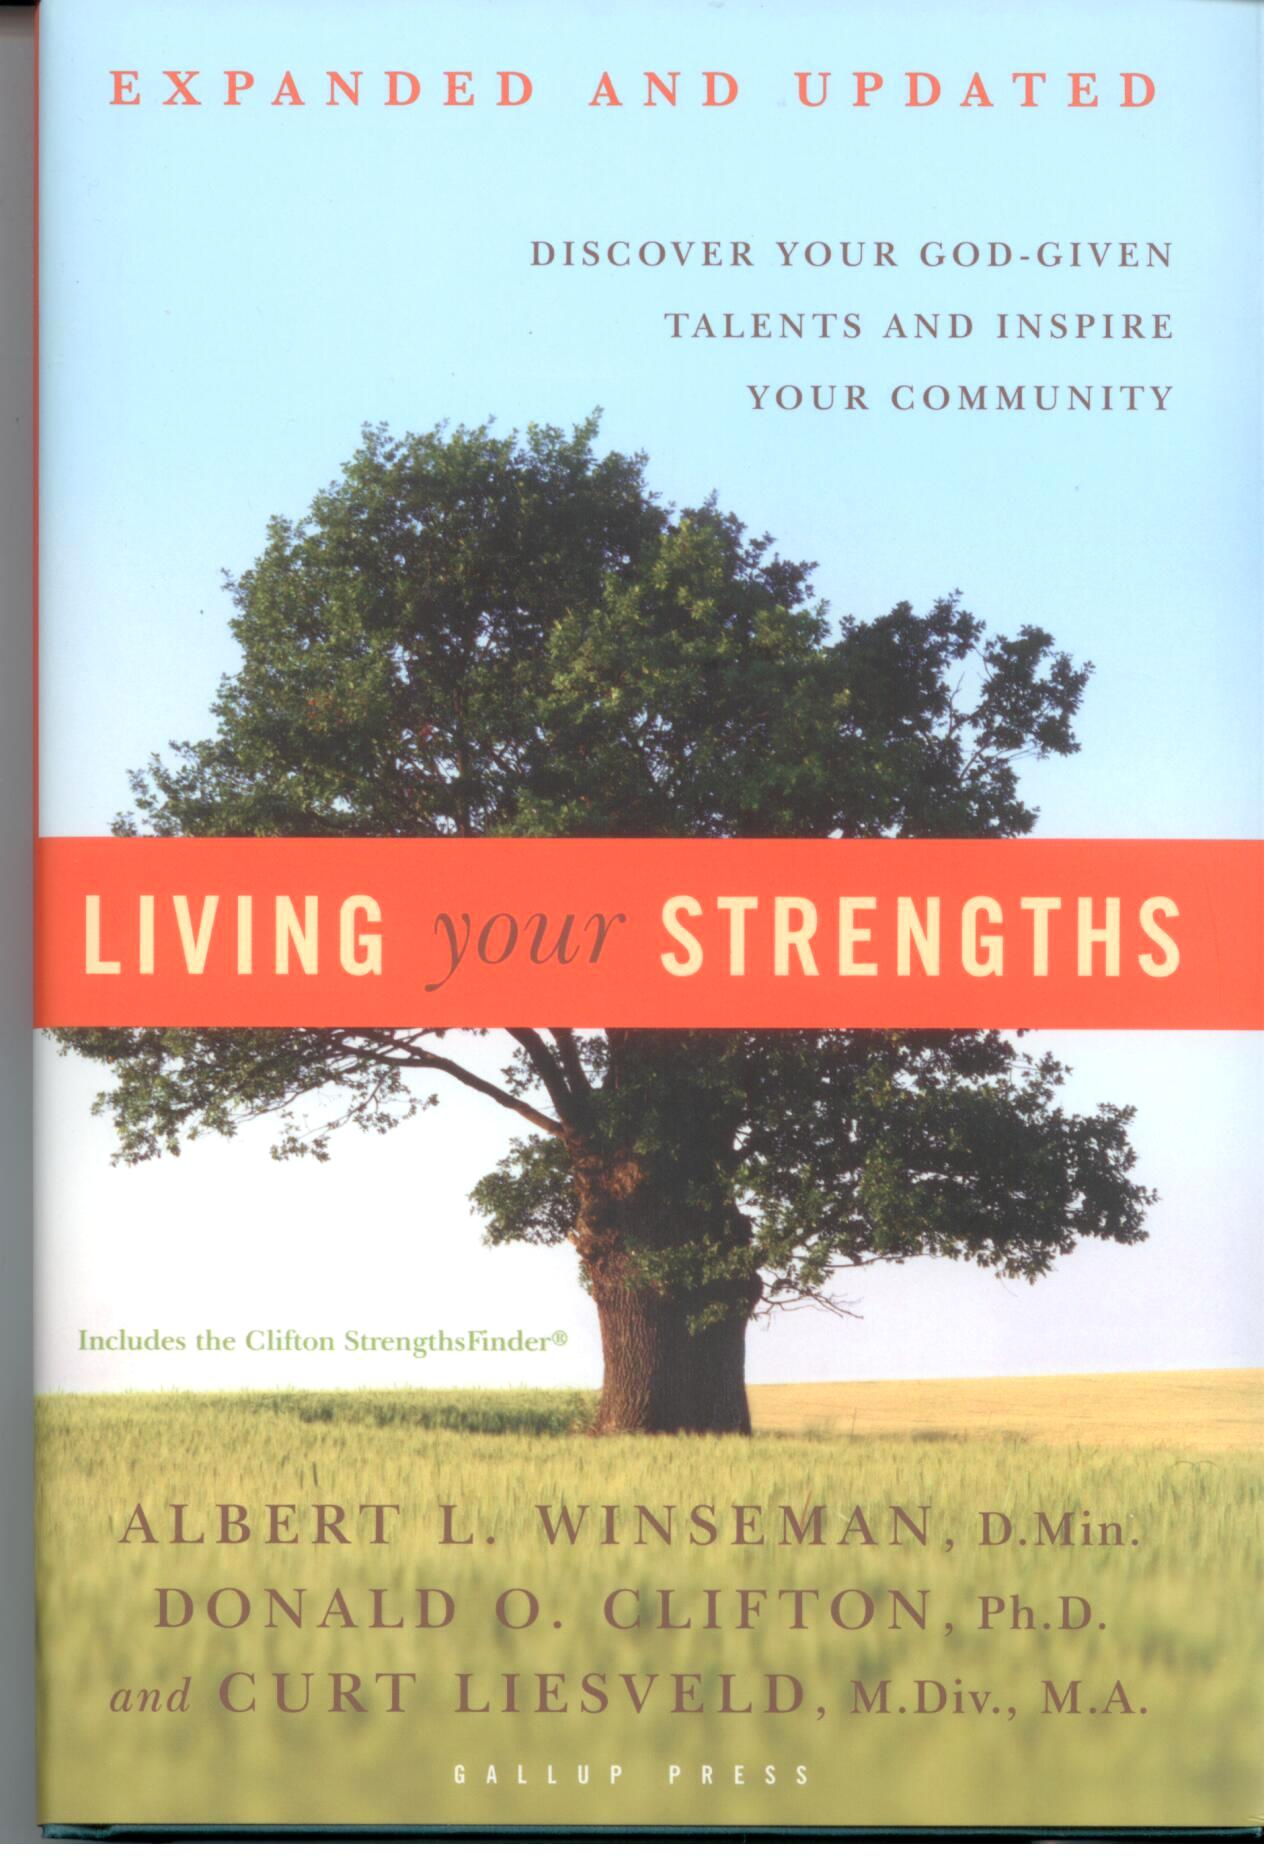 Living Your Strengths by Albert L. Winseman 108-9781595620026